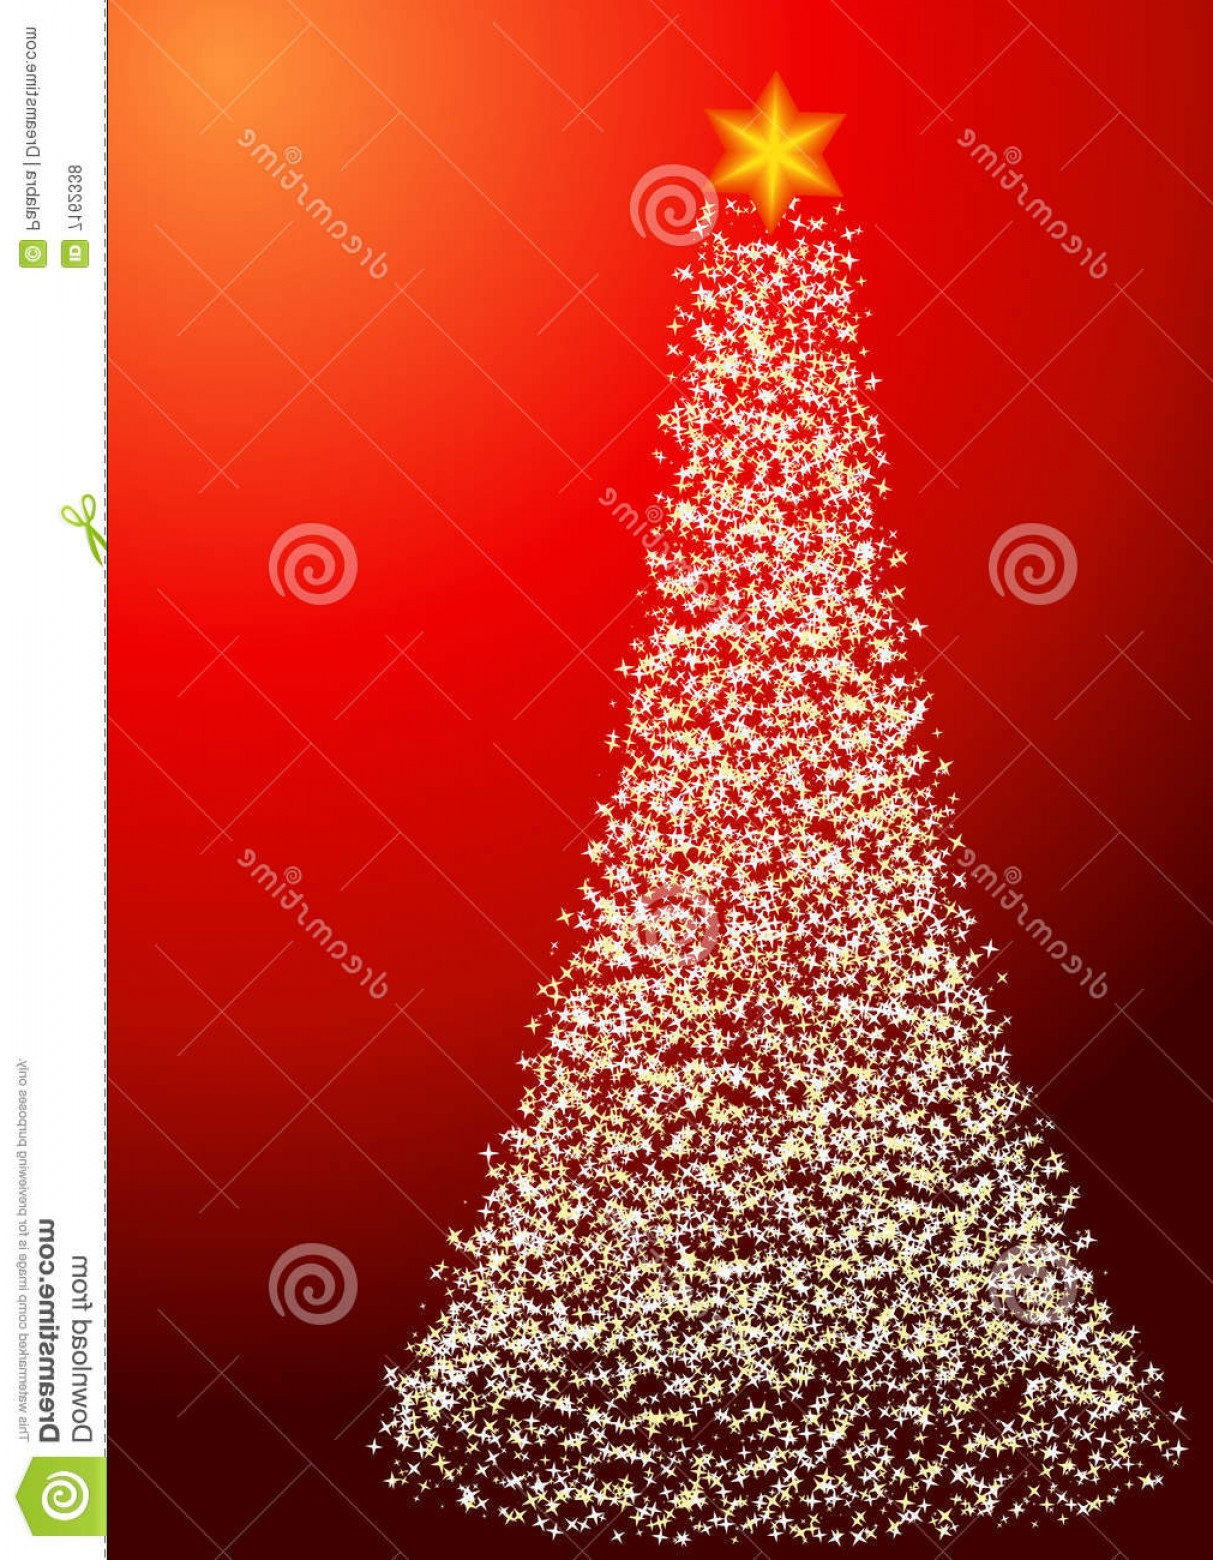 Less Christmas Tree Abstract Vector Background: Royalty Free Stock Photos Starry Christmas Tree Portrait Orientation Image